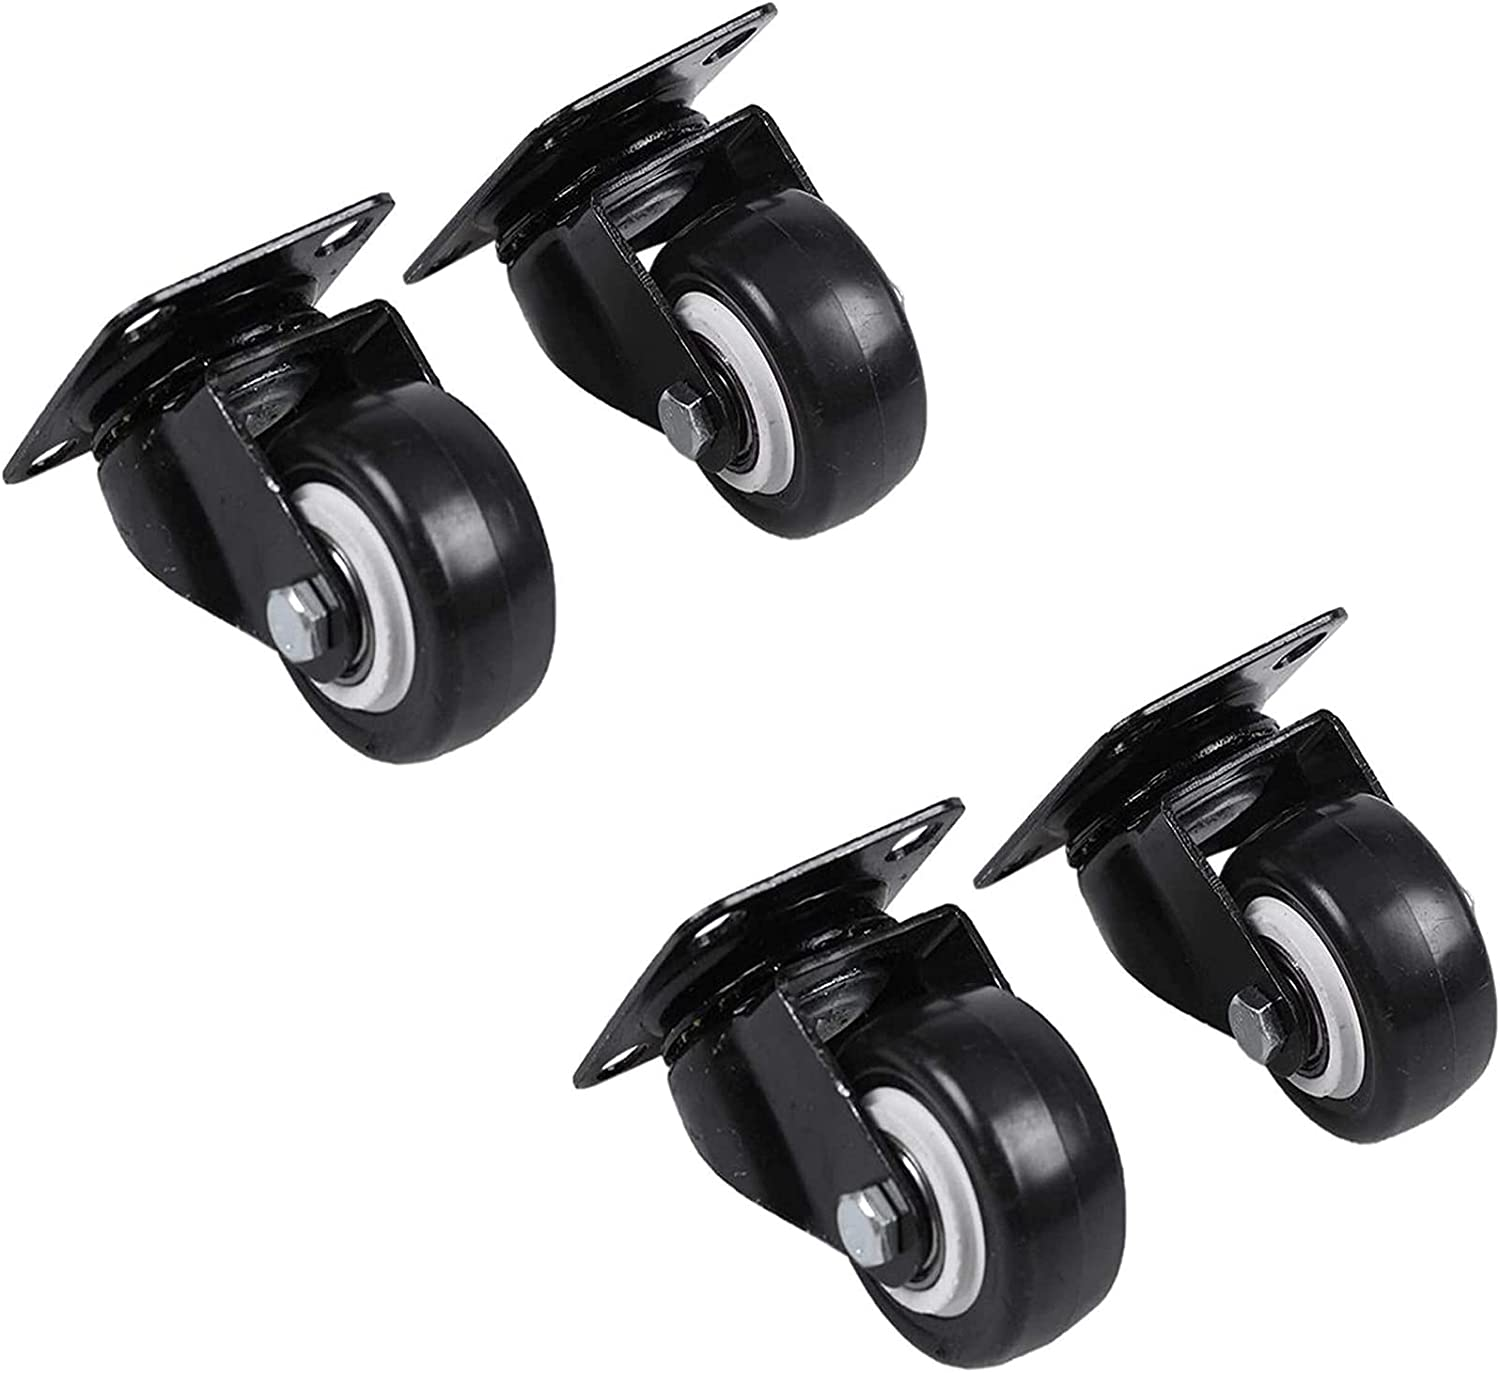 ZHAWE Replacement Max 88% OFF Office Chair trust Casters 4 Furniture Pcs O